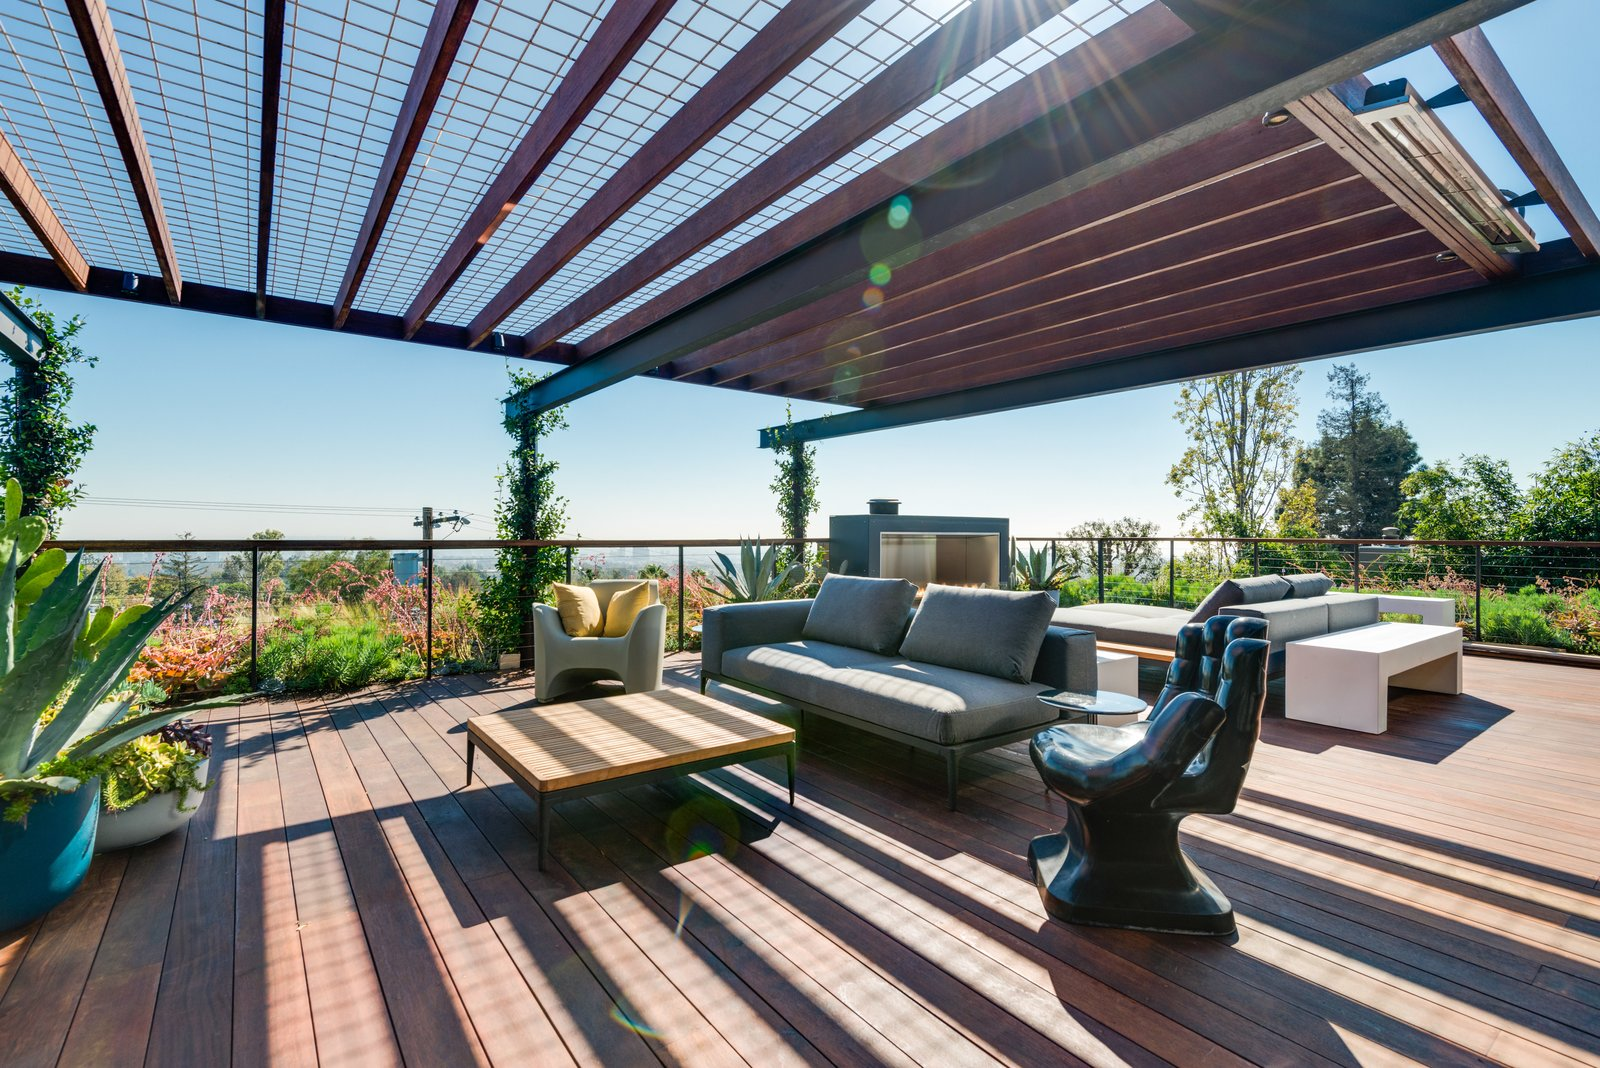 Outdoor, Wood, Metal, Decking, Rooftop, Planters, Horizontal, and Raised Planters The cantilevered flating Managris wood deck.  Best Outdoor Metal Photos from A Renovated Harry Gesner–Designed Midcentury in L.A. Wants $9.4M